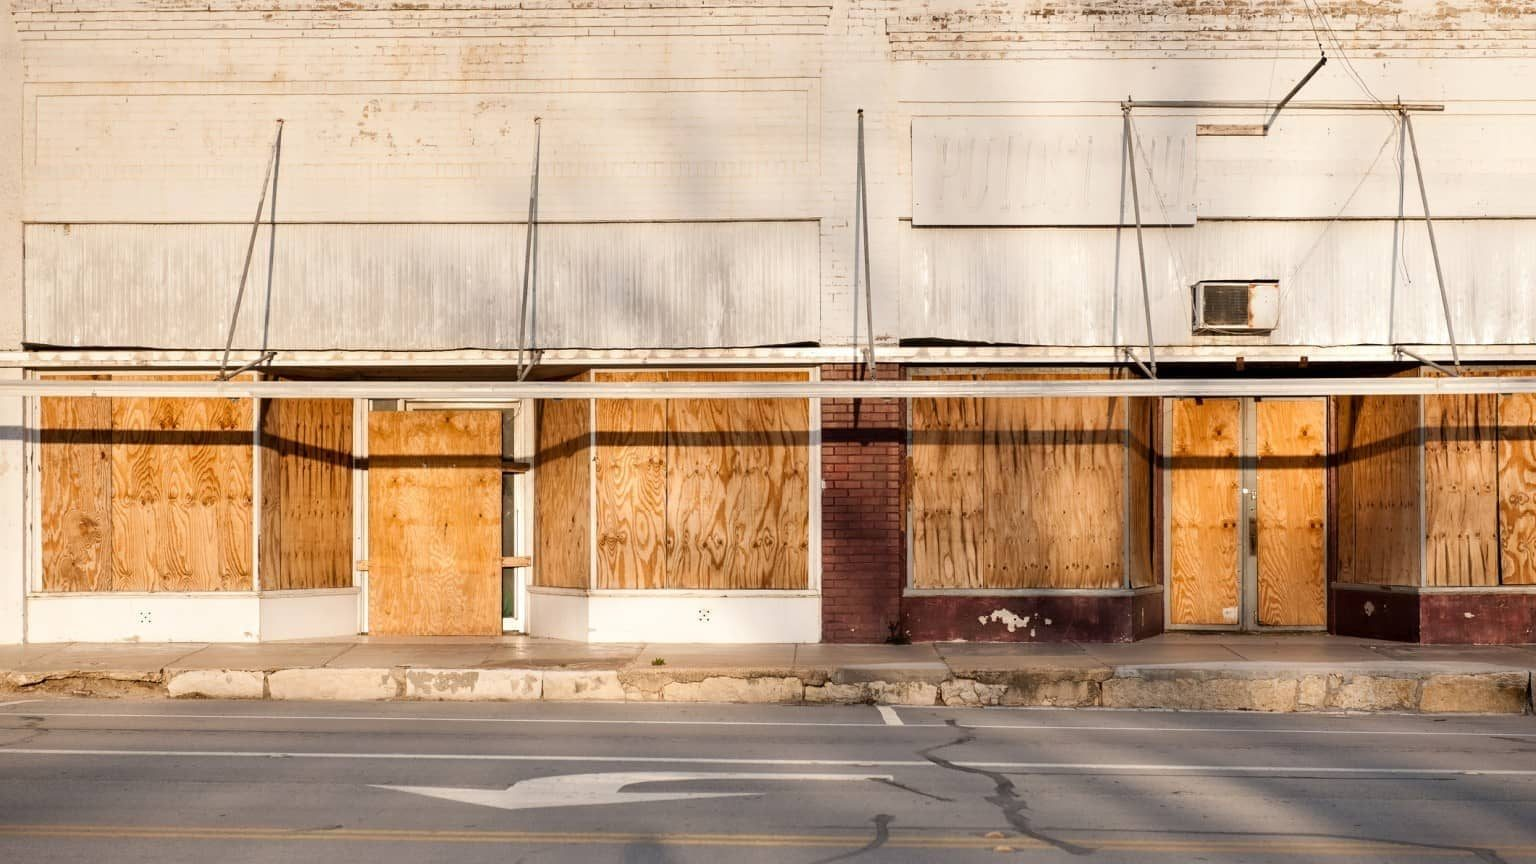 businesses whose windows are boarded up